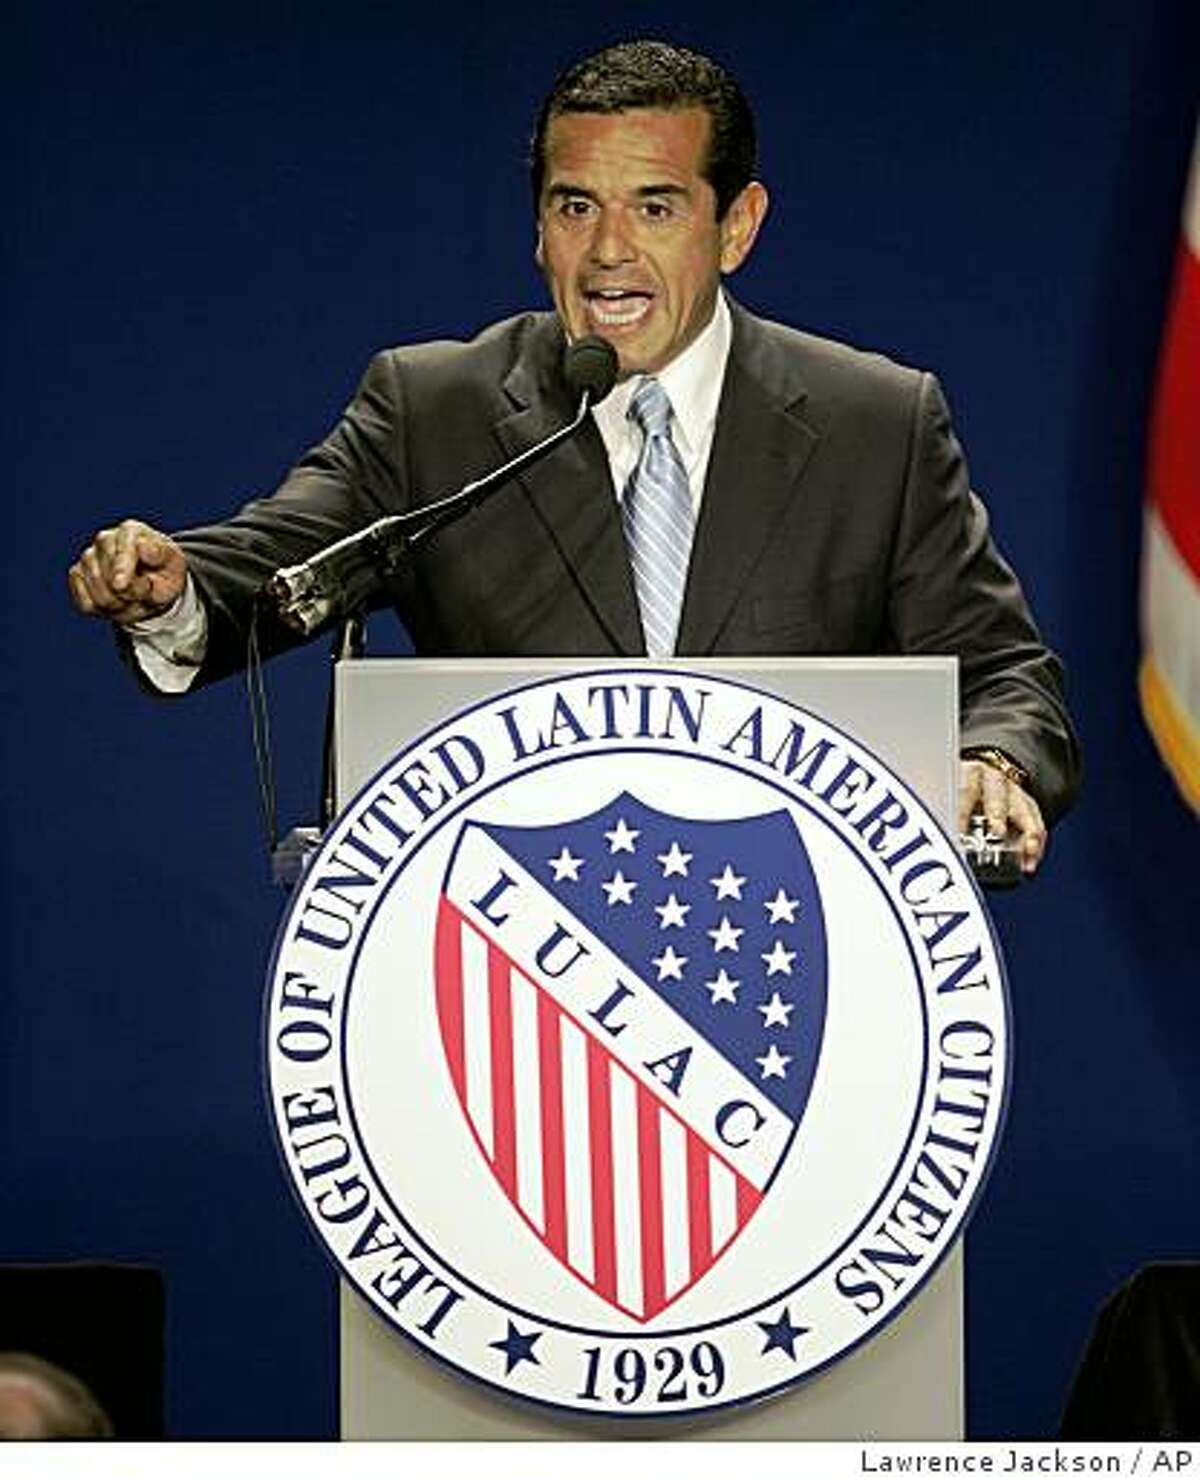 Los Angeles Mayor Antonio Villaraigosa gestures prior to introducing Democratic presidential candidate Sen. Barack Obama, D-Ill., Tuesday, July 8, 2008, at the League of United Latin American Citizens in Washington. (AP Photo/Lawrence Jackson)